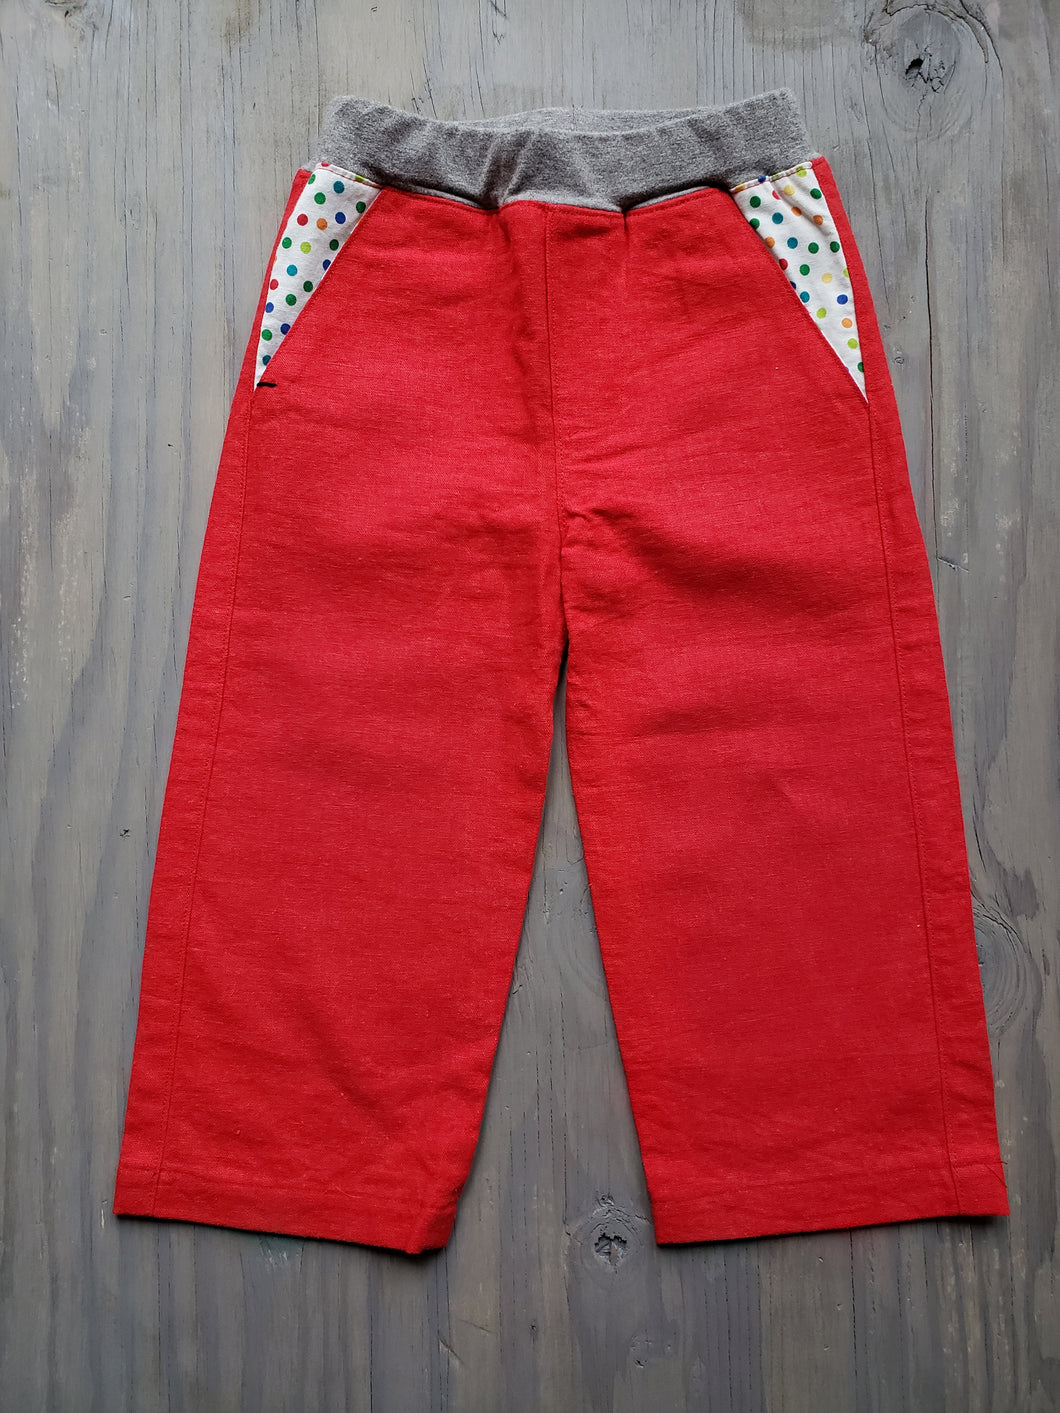 Red Fancy Pants